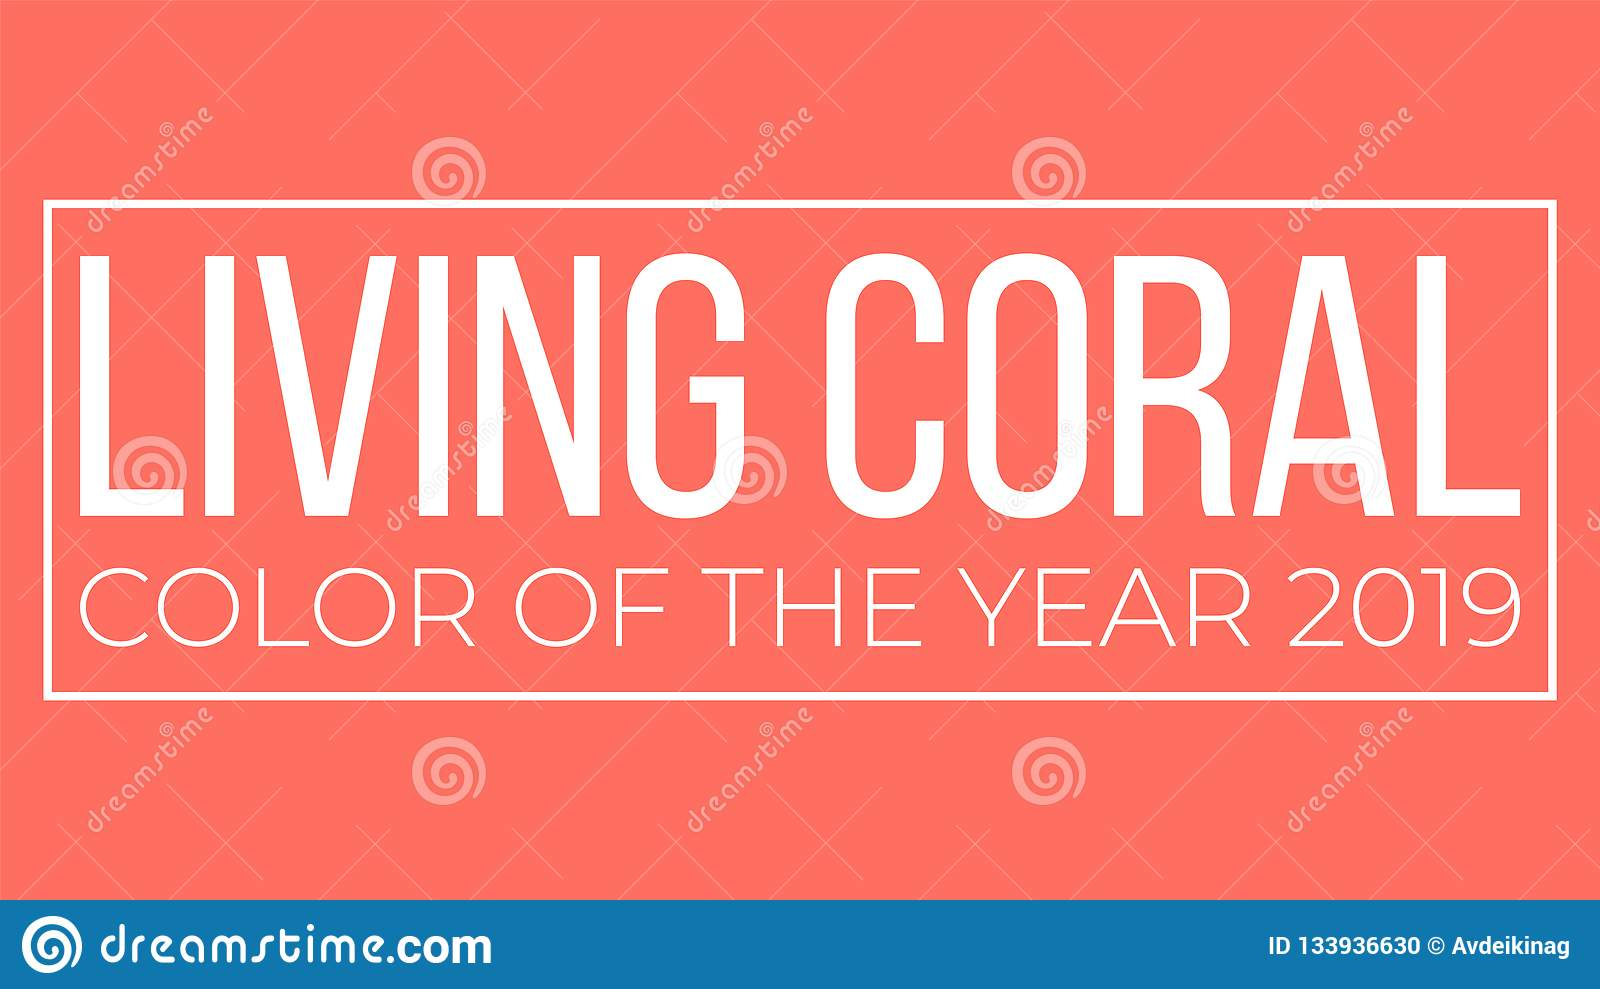 Living Coral Color Of The Year Vector Presentation Stock Vector